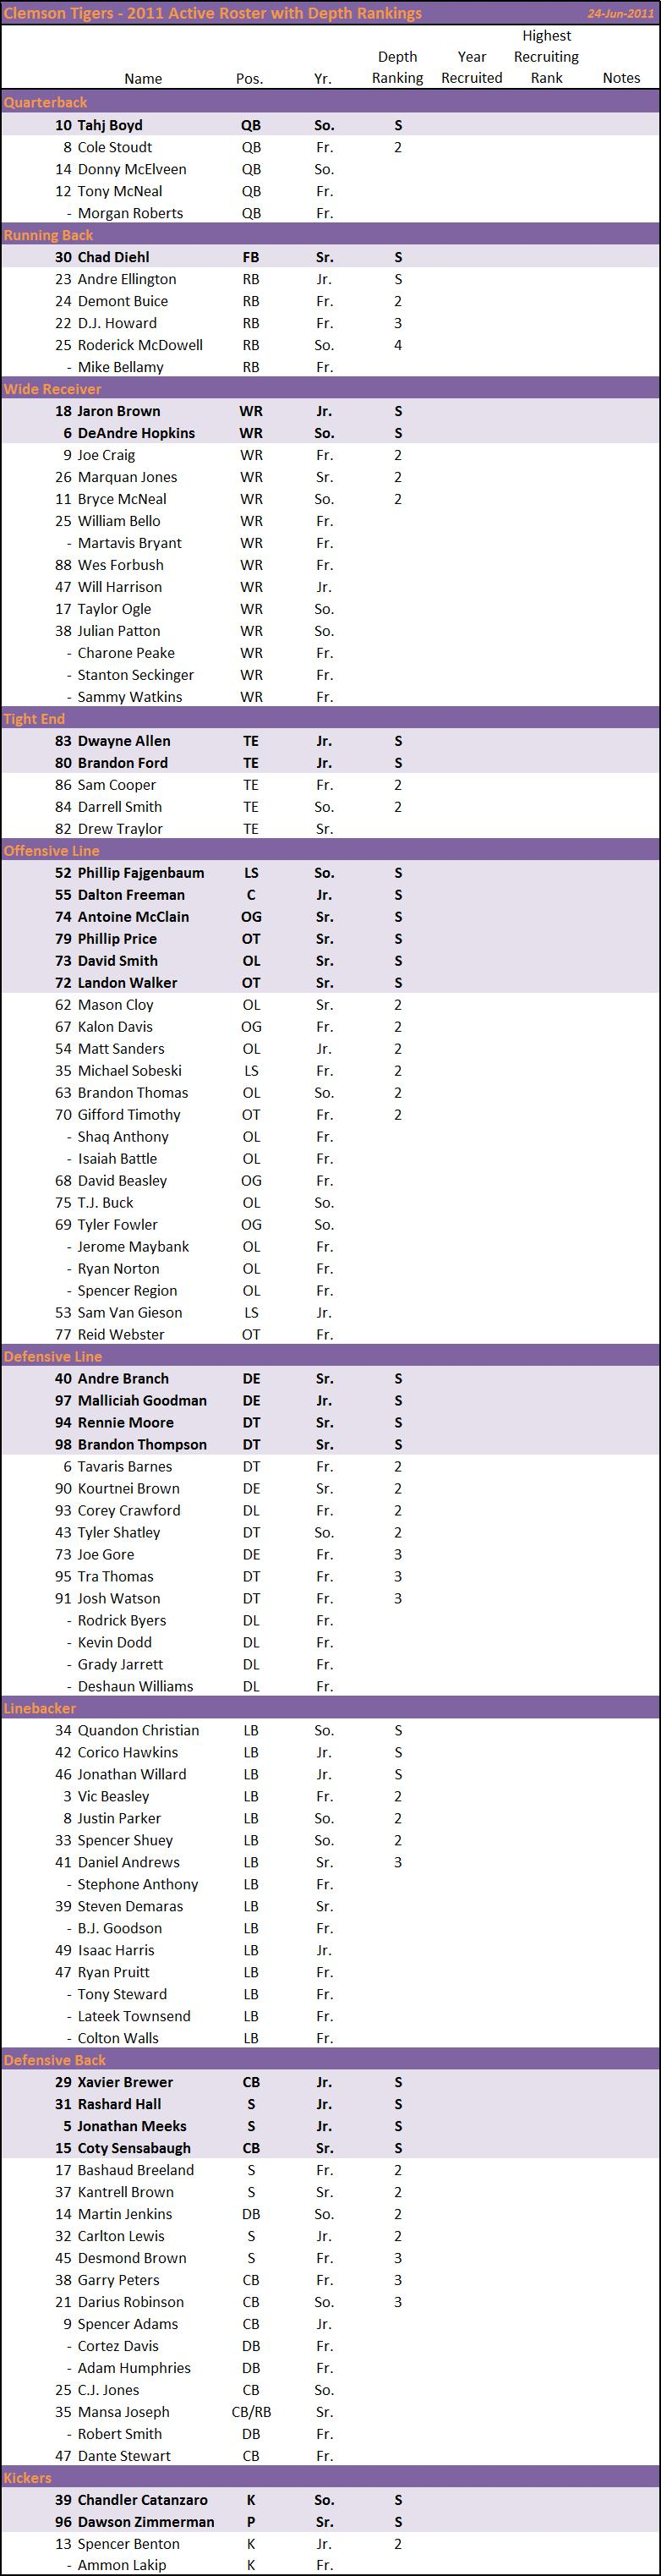 Clemson Tigers Roster Depth Charts